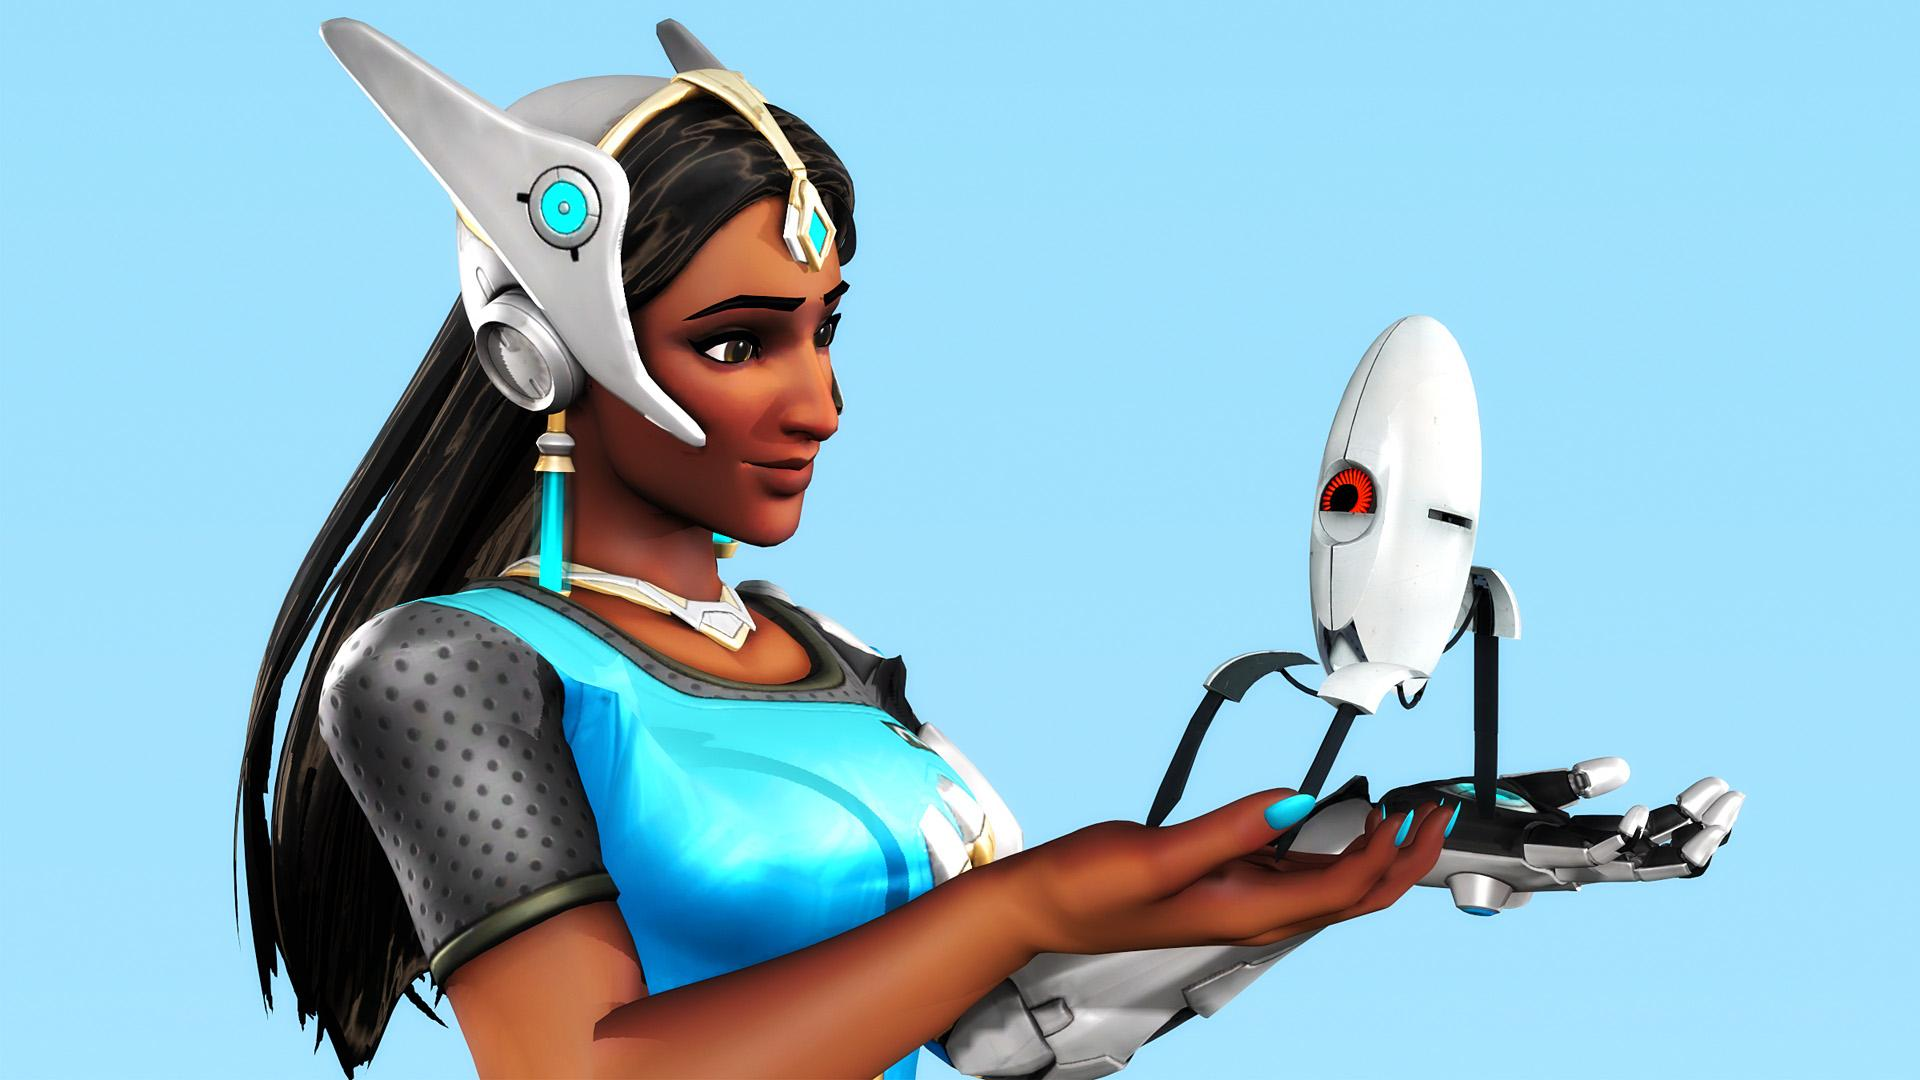 Symmetra With Sentry Turret | Overwatch Wallpapers